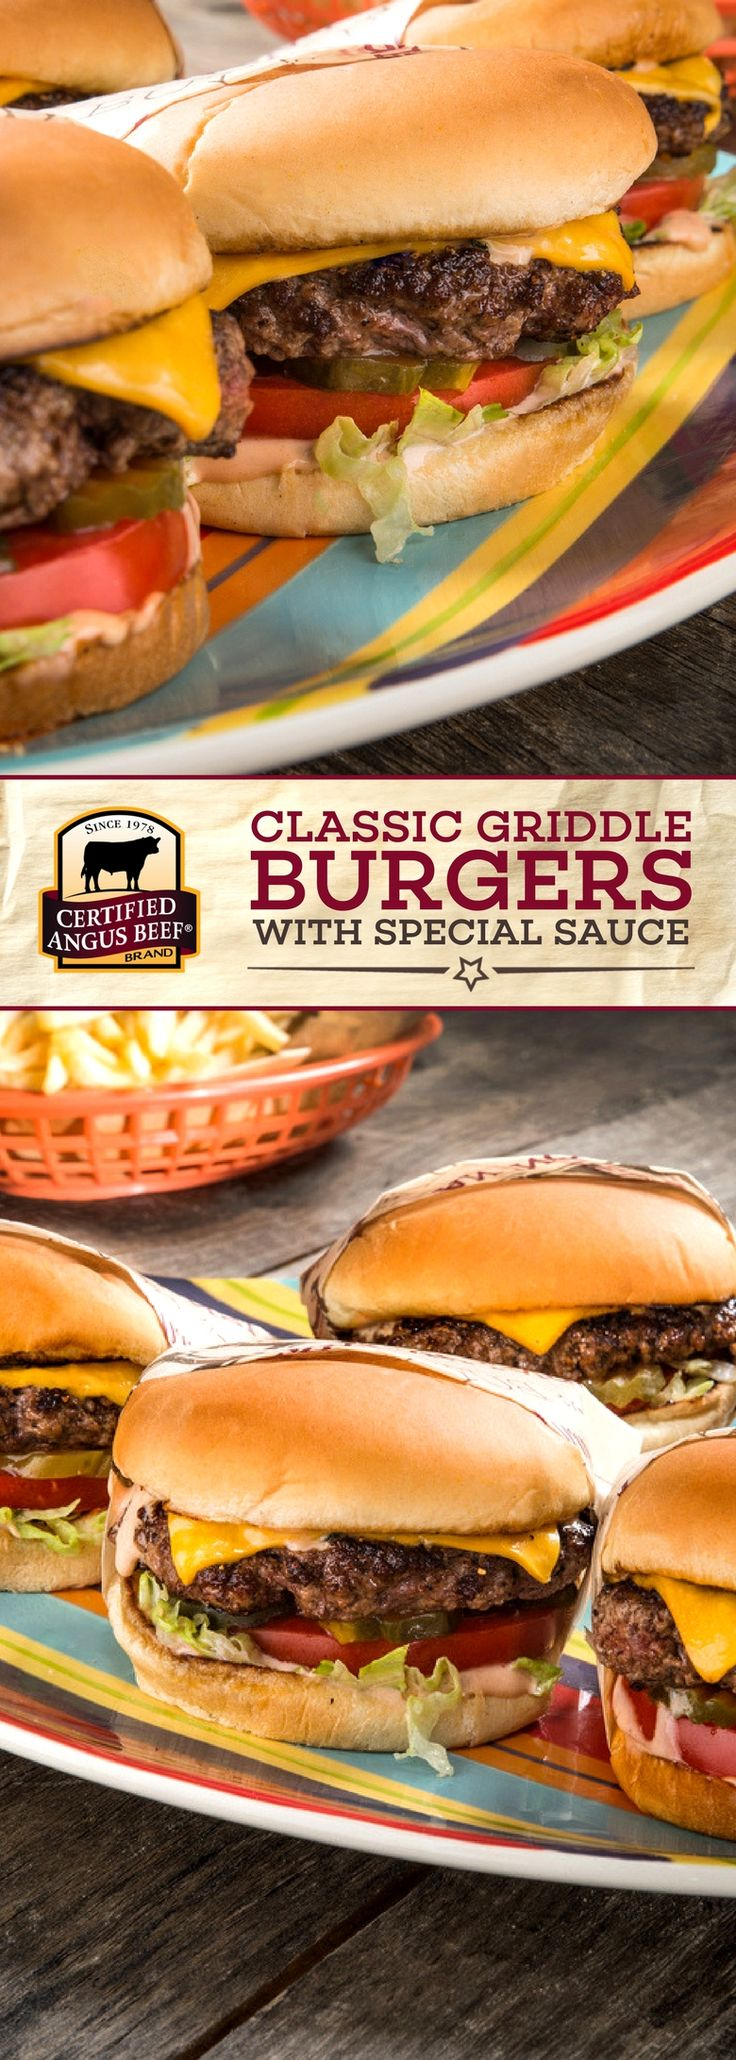 Certified Angus Beef®️️️️ brand Classic Griddle Burgers with Special Sauce bring classic burgers to the next level. This delicious burger recipe uses the best ground chuck and a special sauce that packs a flavorful PUNCH! Cook in beef or bacon fat to bring out the deep flavor in this dish. #bestangusbeef #certifiedangusbeef #beefrecipe #burgertime #gamedayrecipes